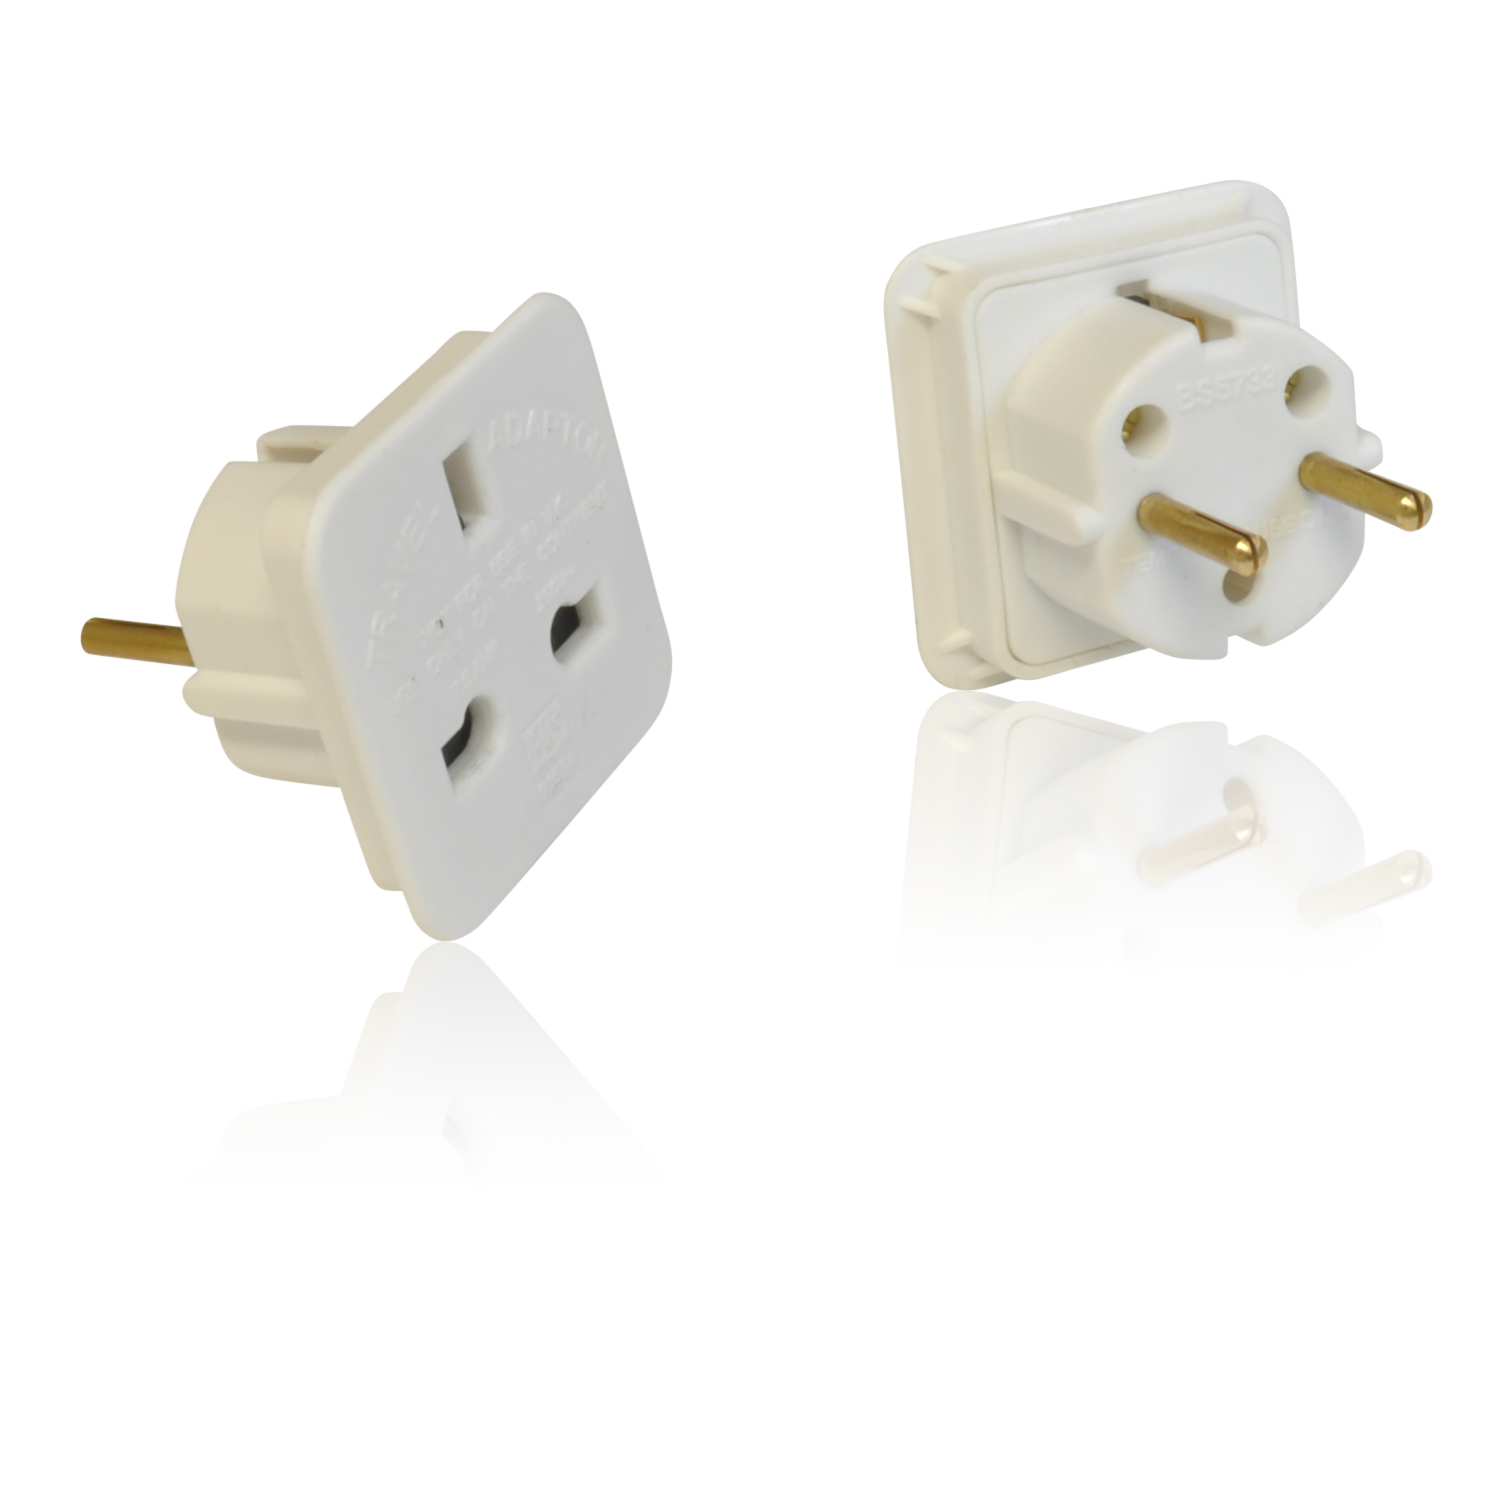 3 Pin Uk To 2 Pin Euro European Travel Mains Adapter